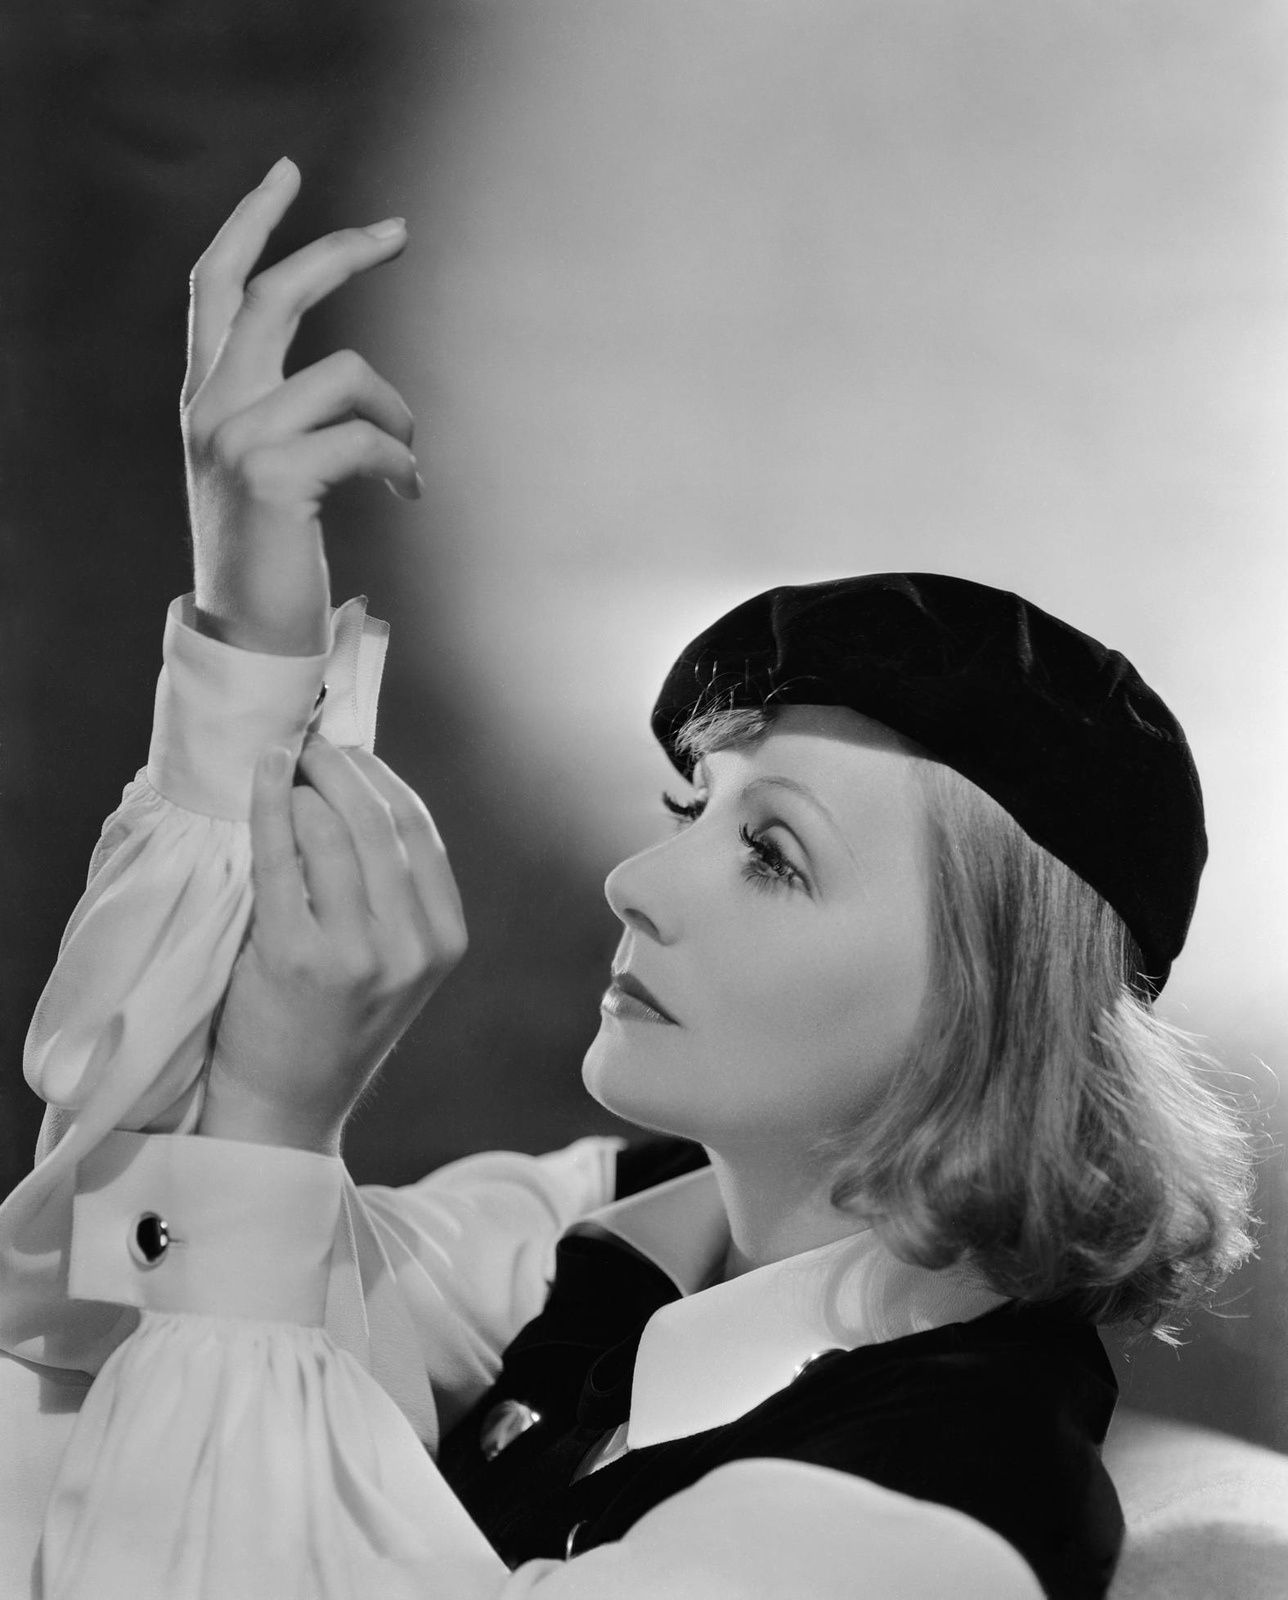 AS YOU DESIRE ME (Comme tu me veux, Georges Fitzmaurice 1932)